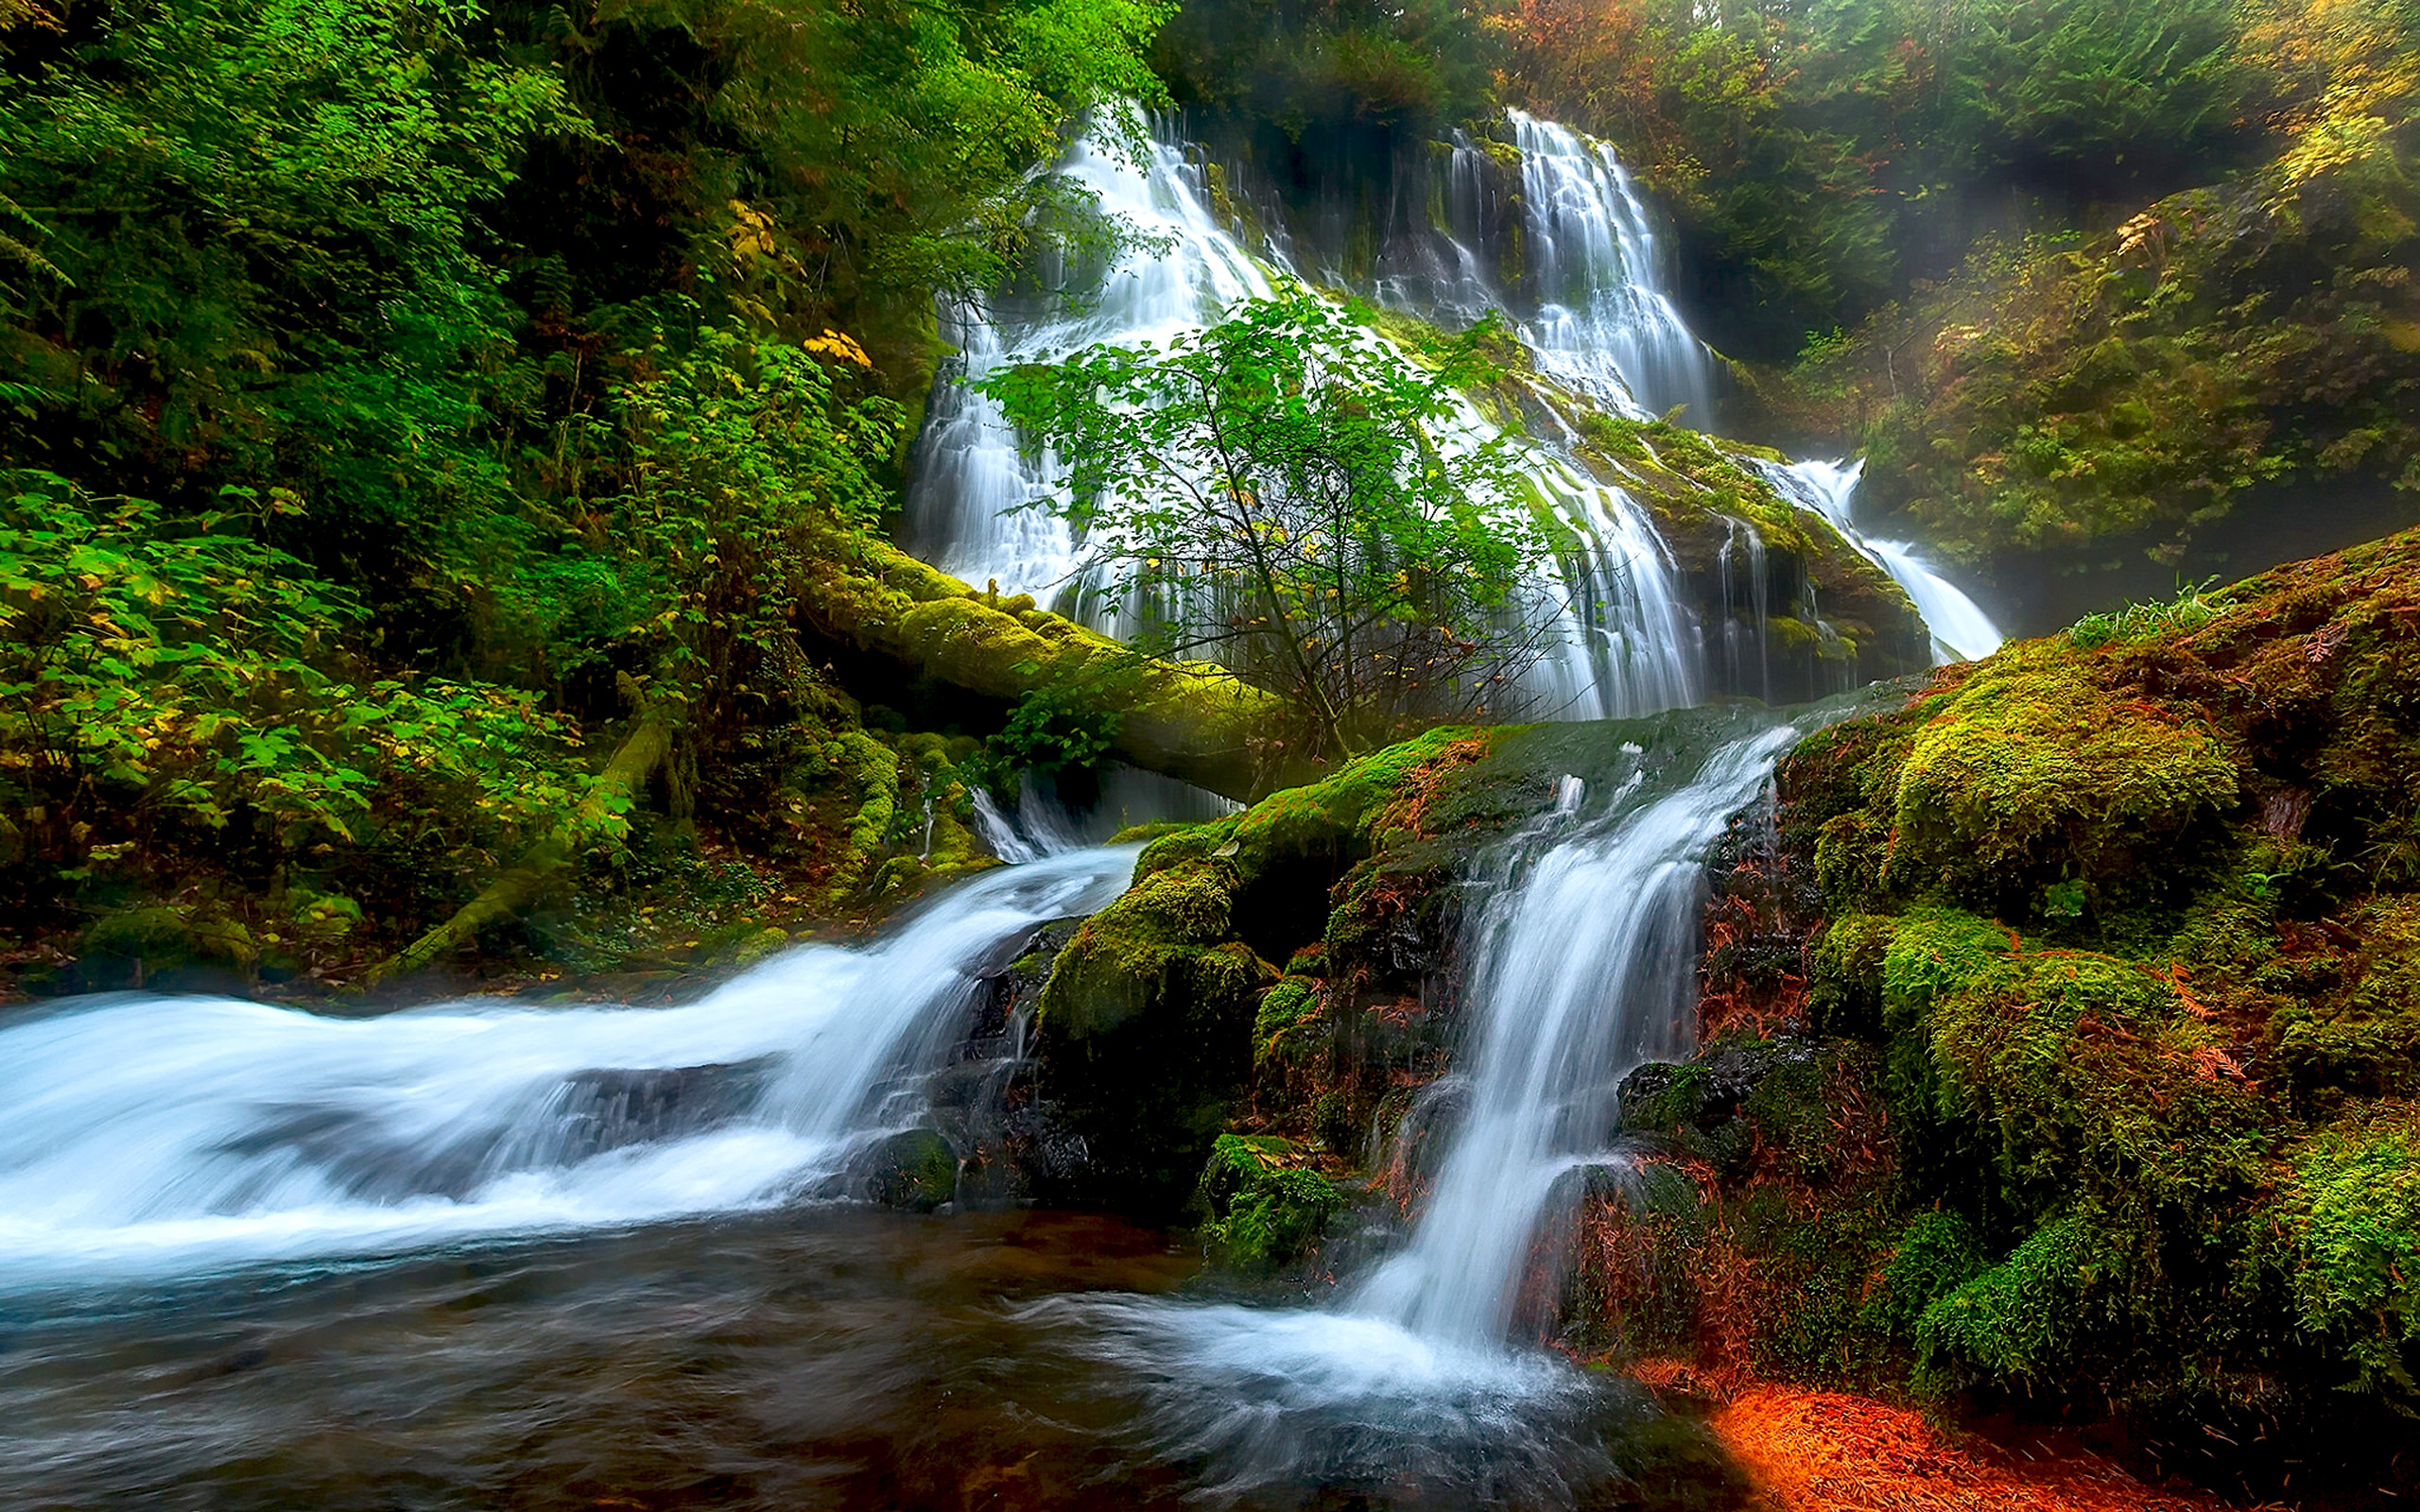 Windows 10 Fall Usa Wallpapers 4k Natural Beauty Panther Creek Falls Columbia River District